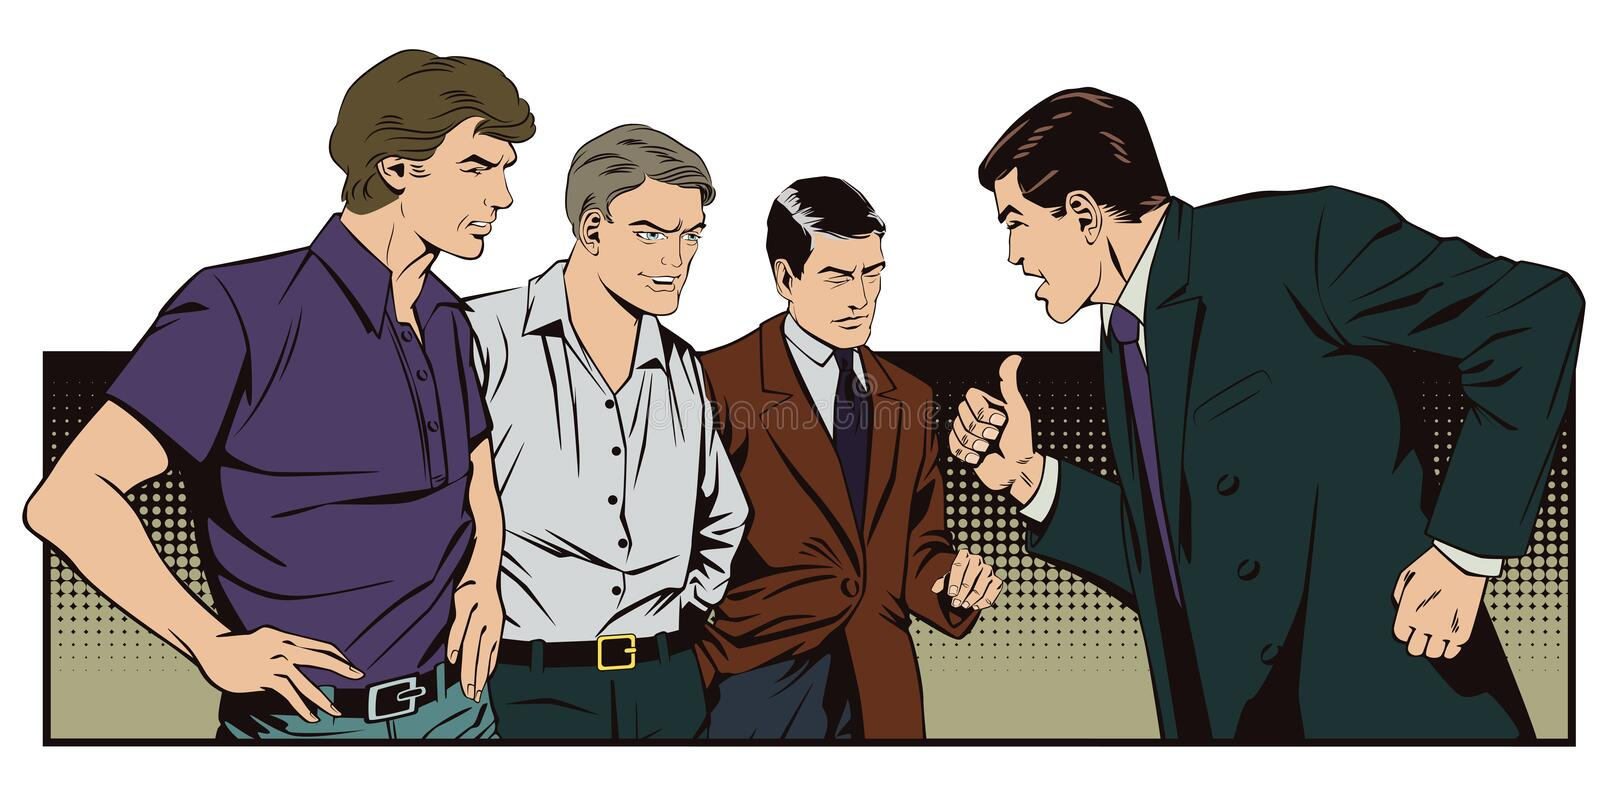 People in retro style. Boss berates subordinates. vector illustration